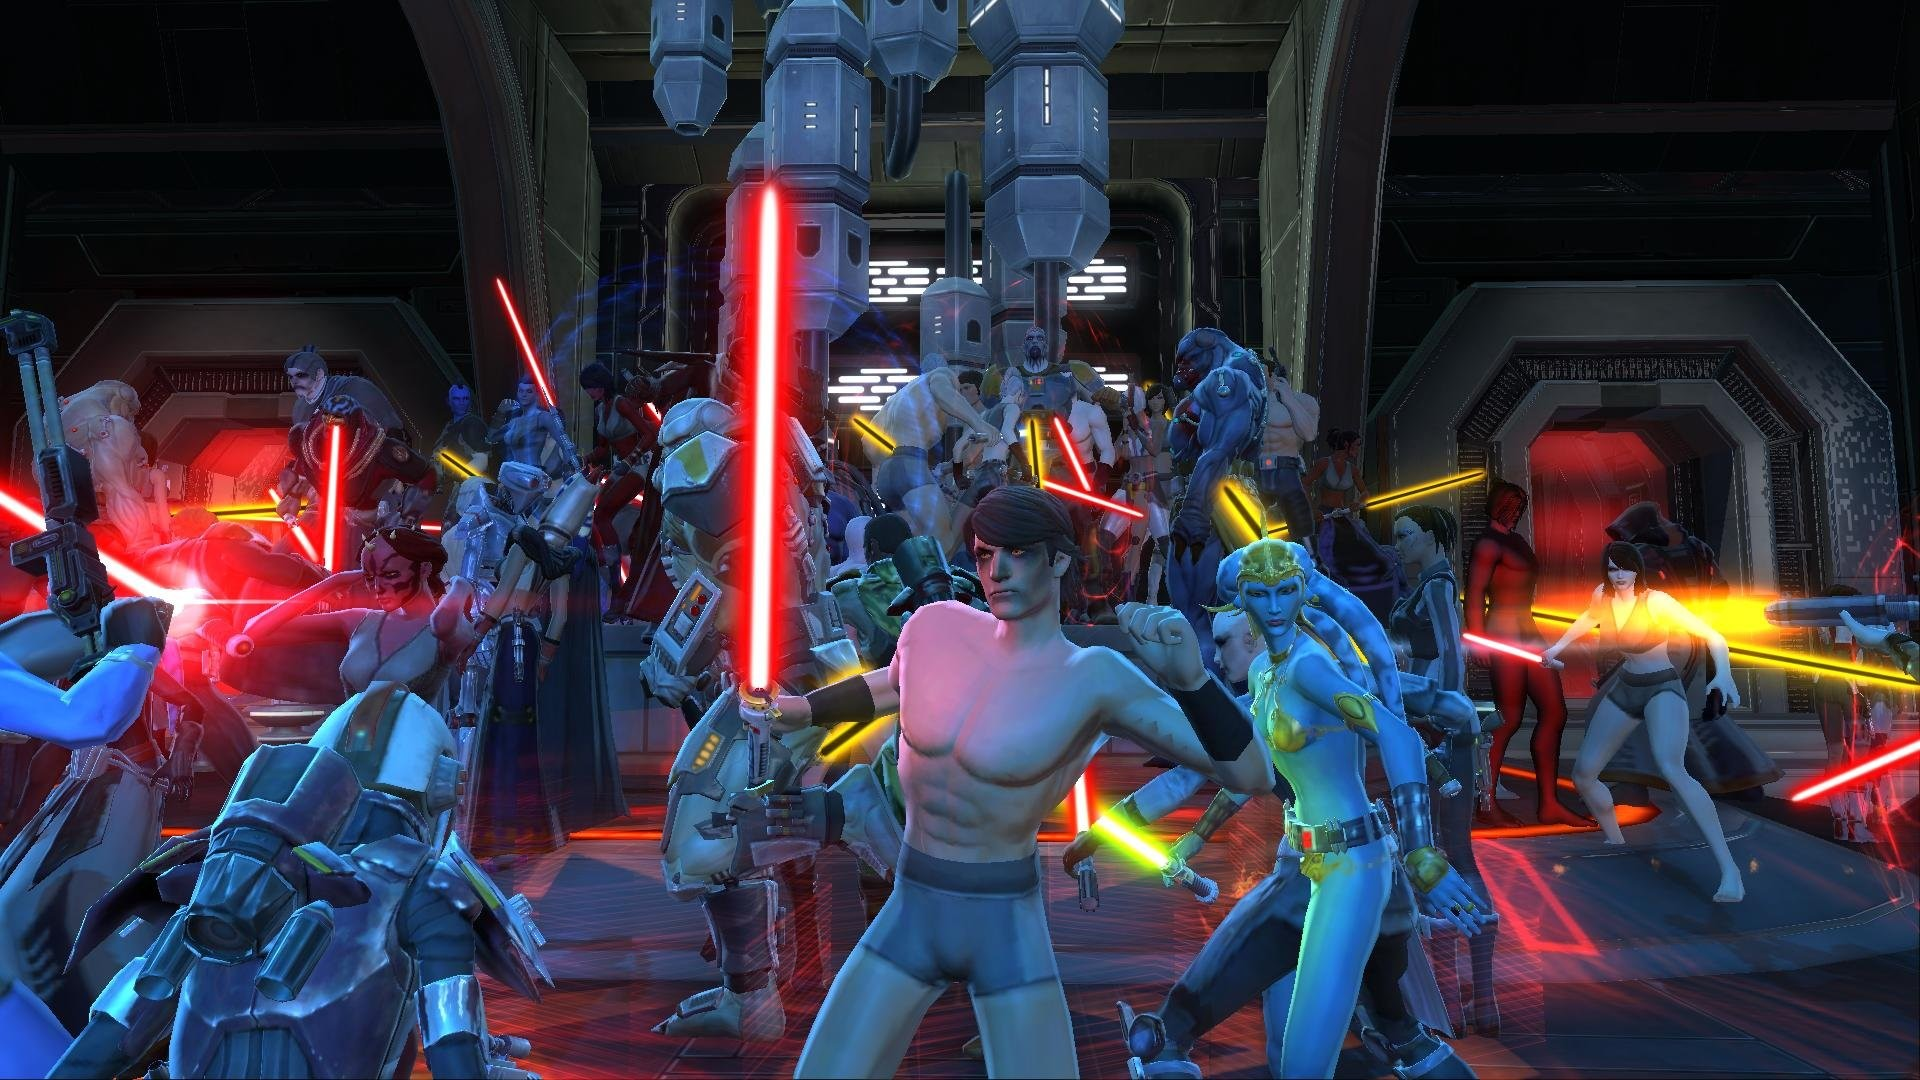 STAR WARS OLD REPUBLIC mmo rpg swtor fighting sci-fi wallpaper      518846   WallpaperUP